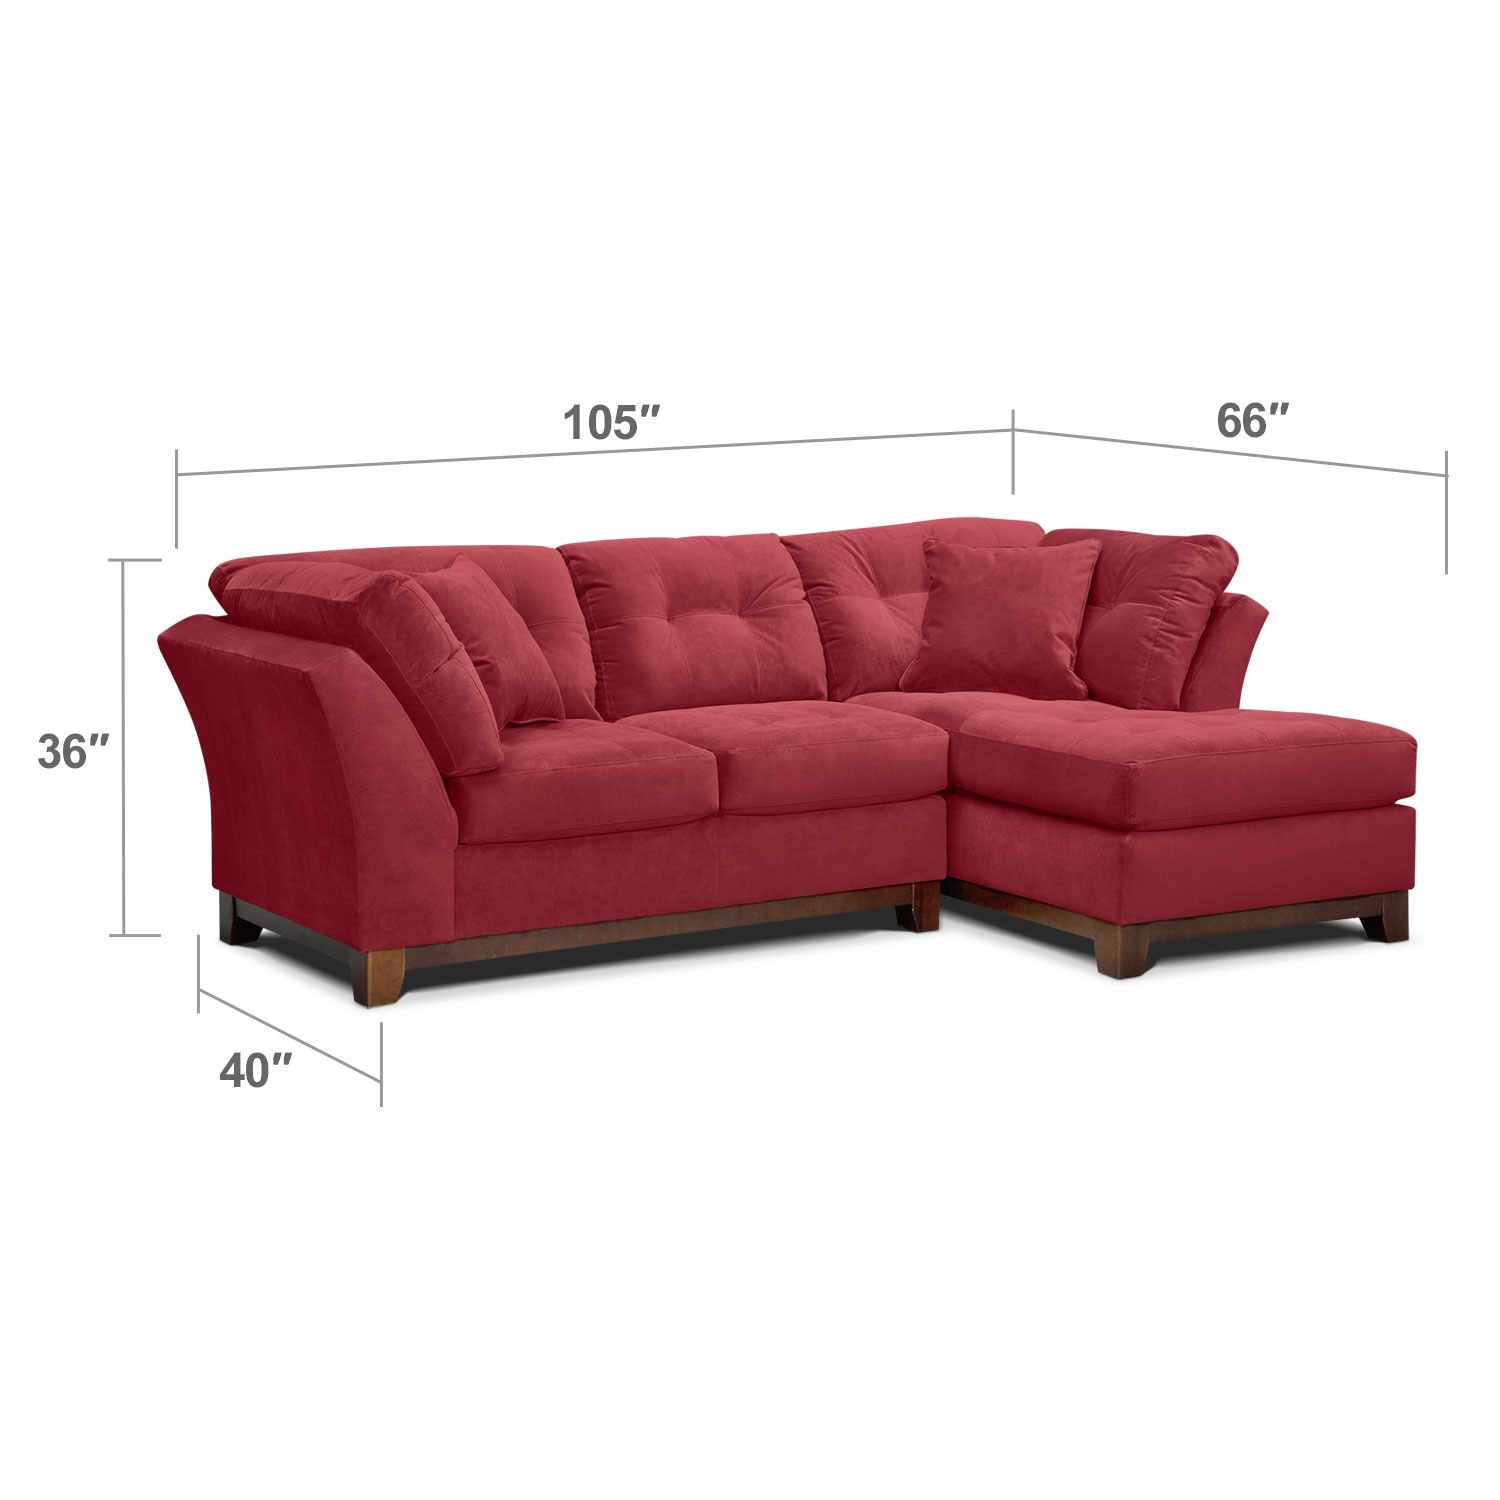 Living Room Furniture - Solace 2-Piece Right-Facing Chaise Sectional - Poppy